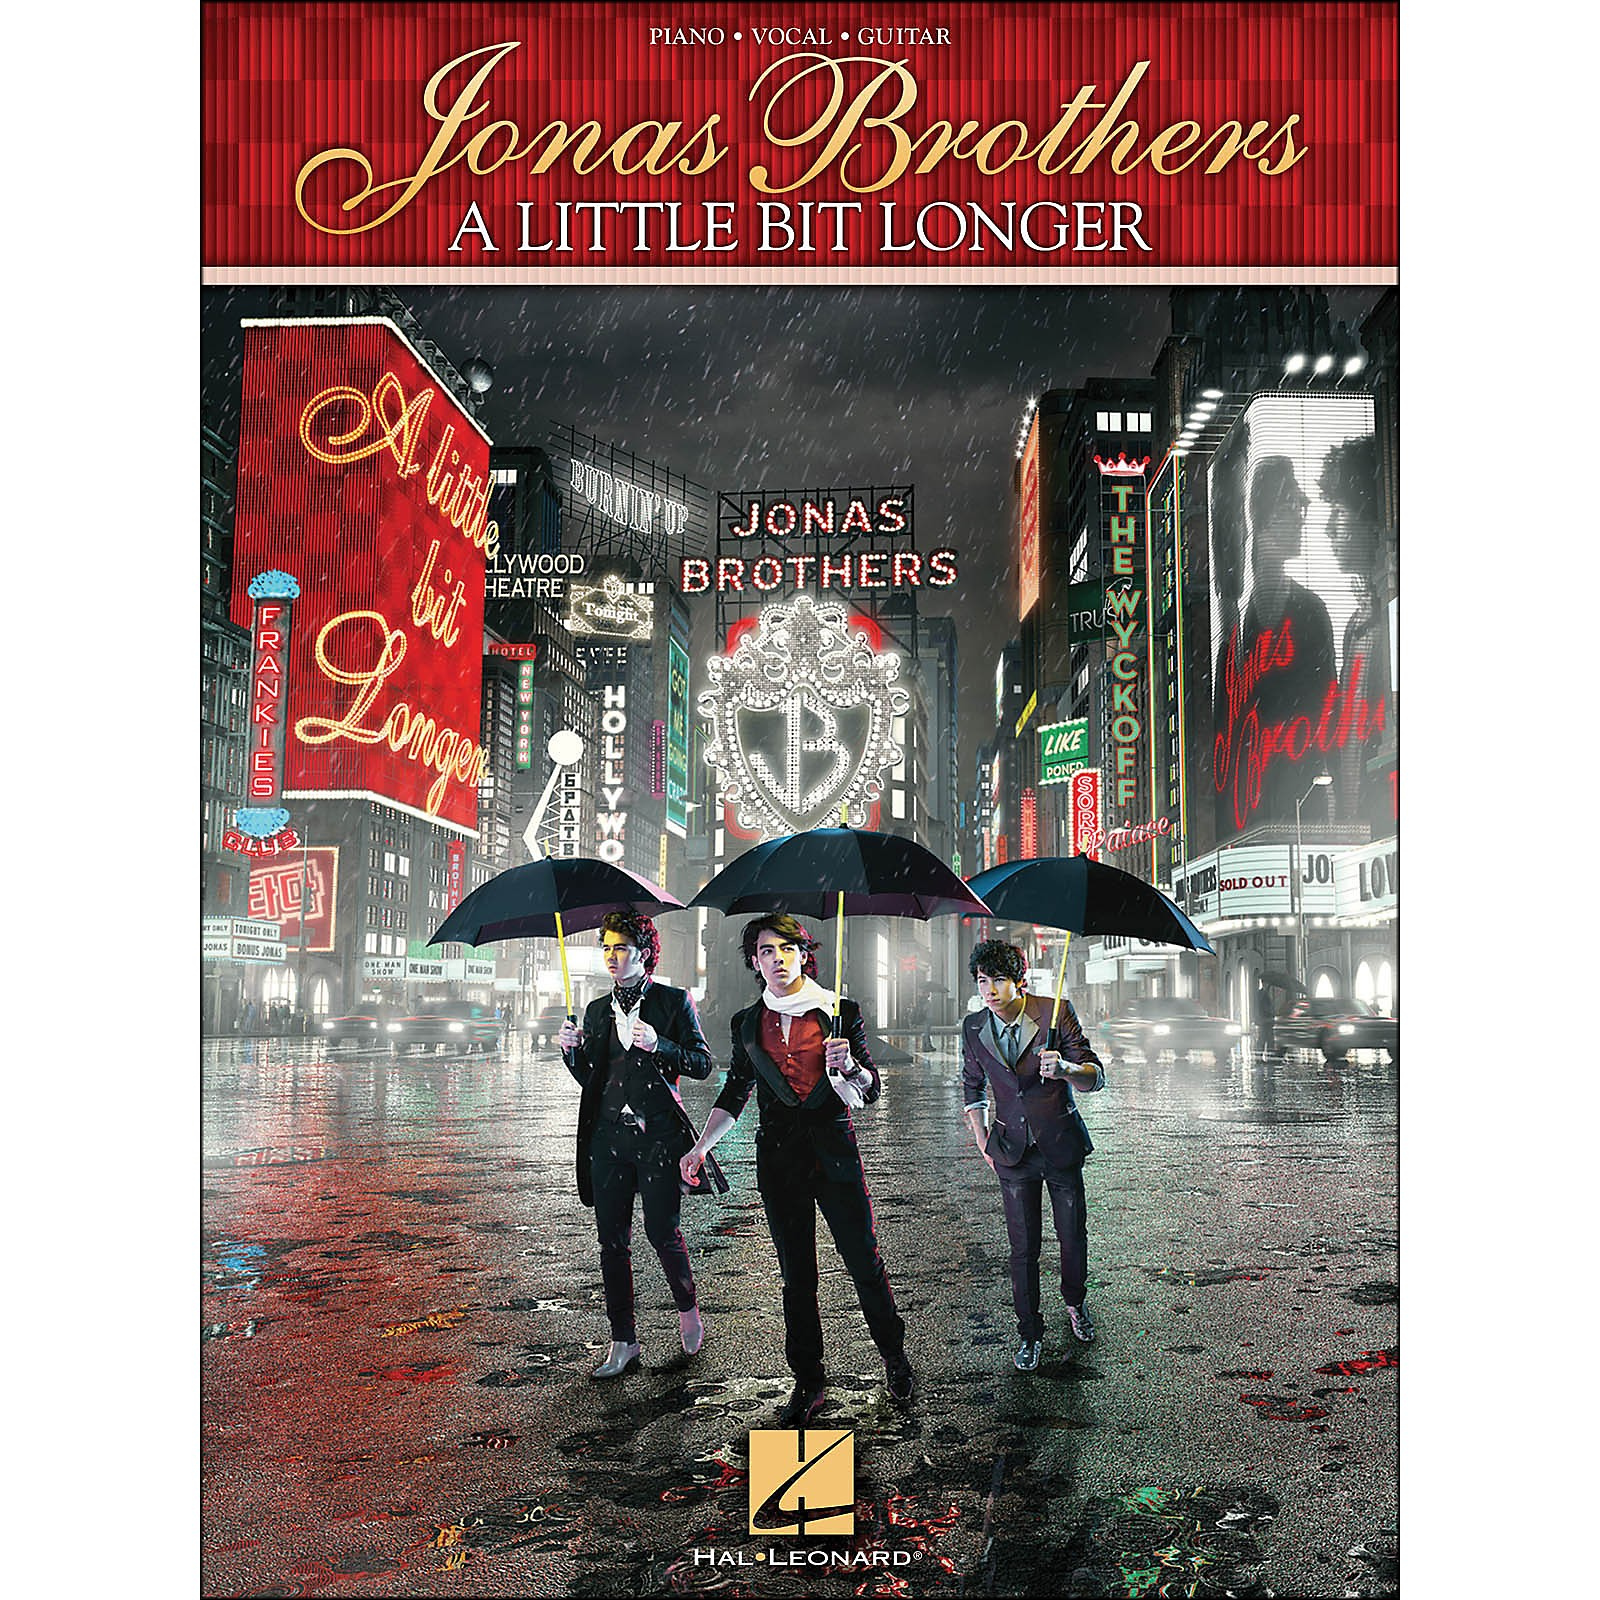 Hal Leonard Jonas Brothers - A Little Bit Longer arranged for piano, vocal, and guitar (P/V/G)